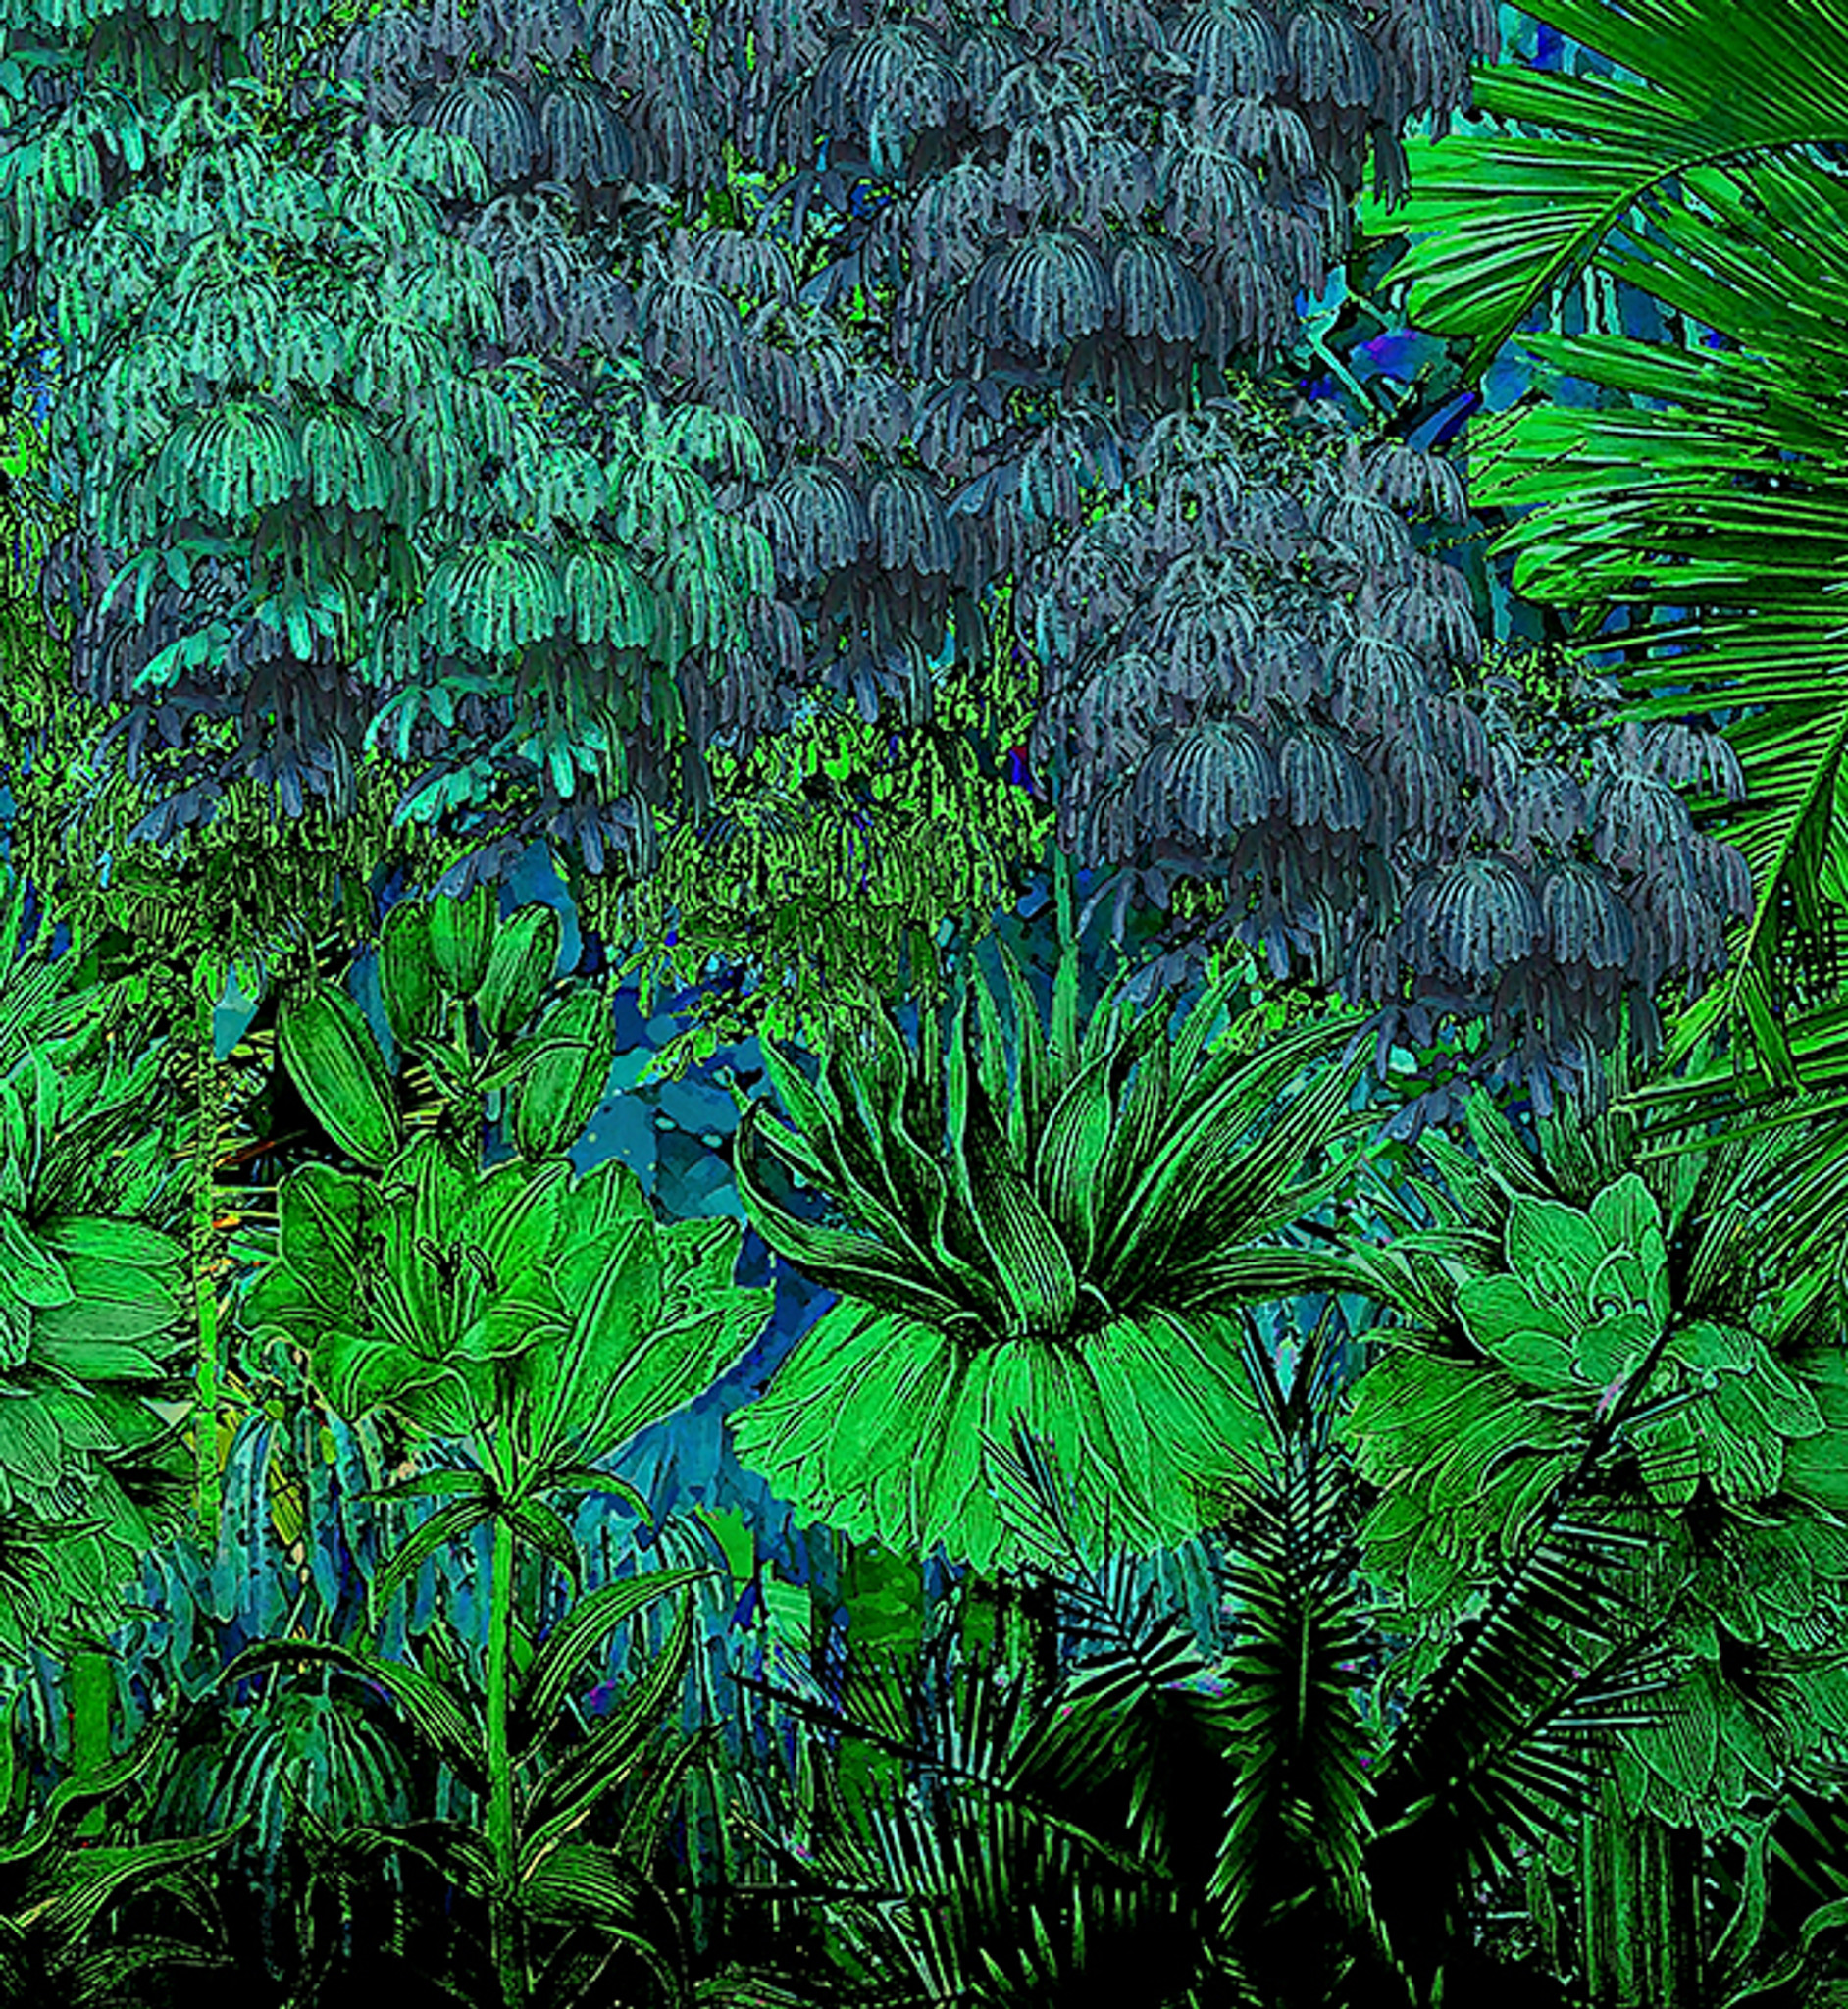 Wallpaper - Jungle Vibe - Original